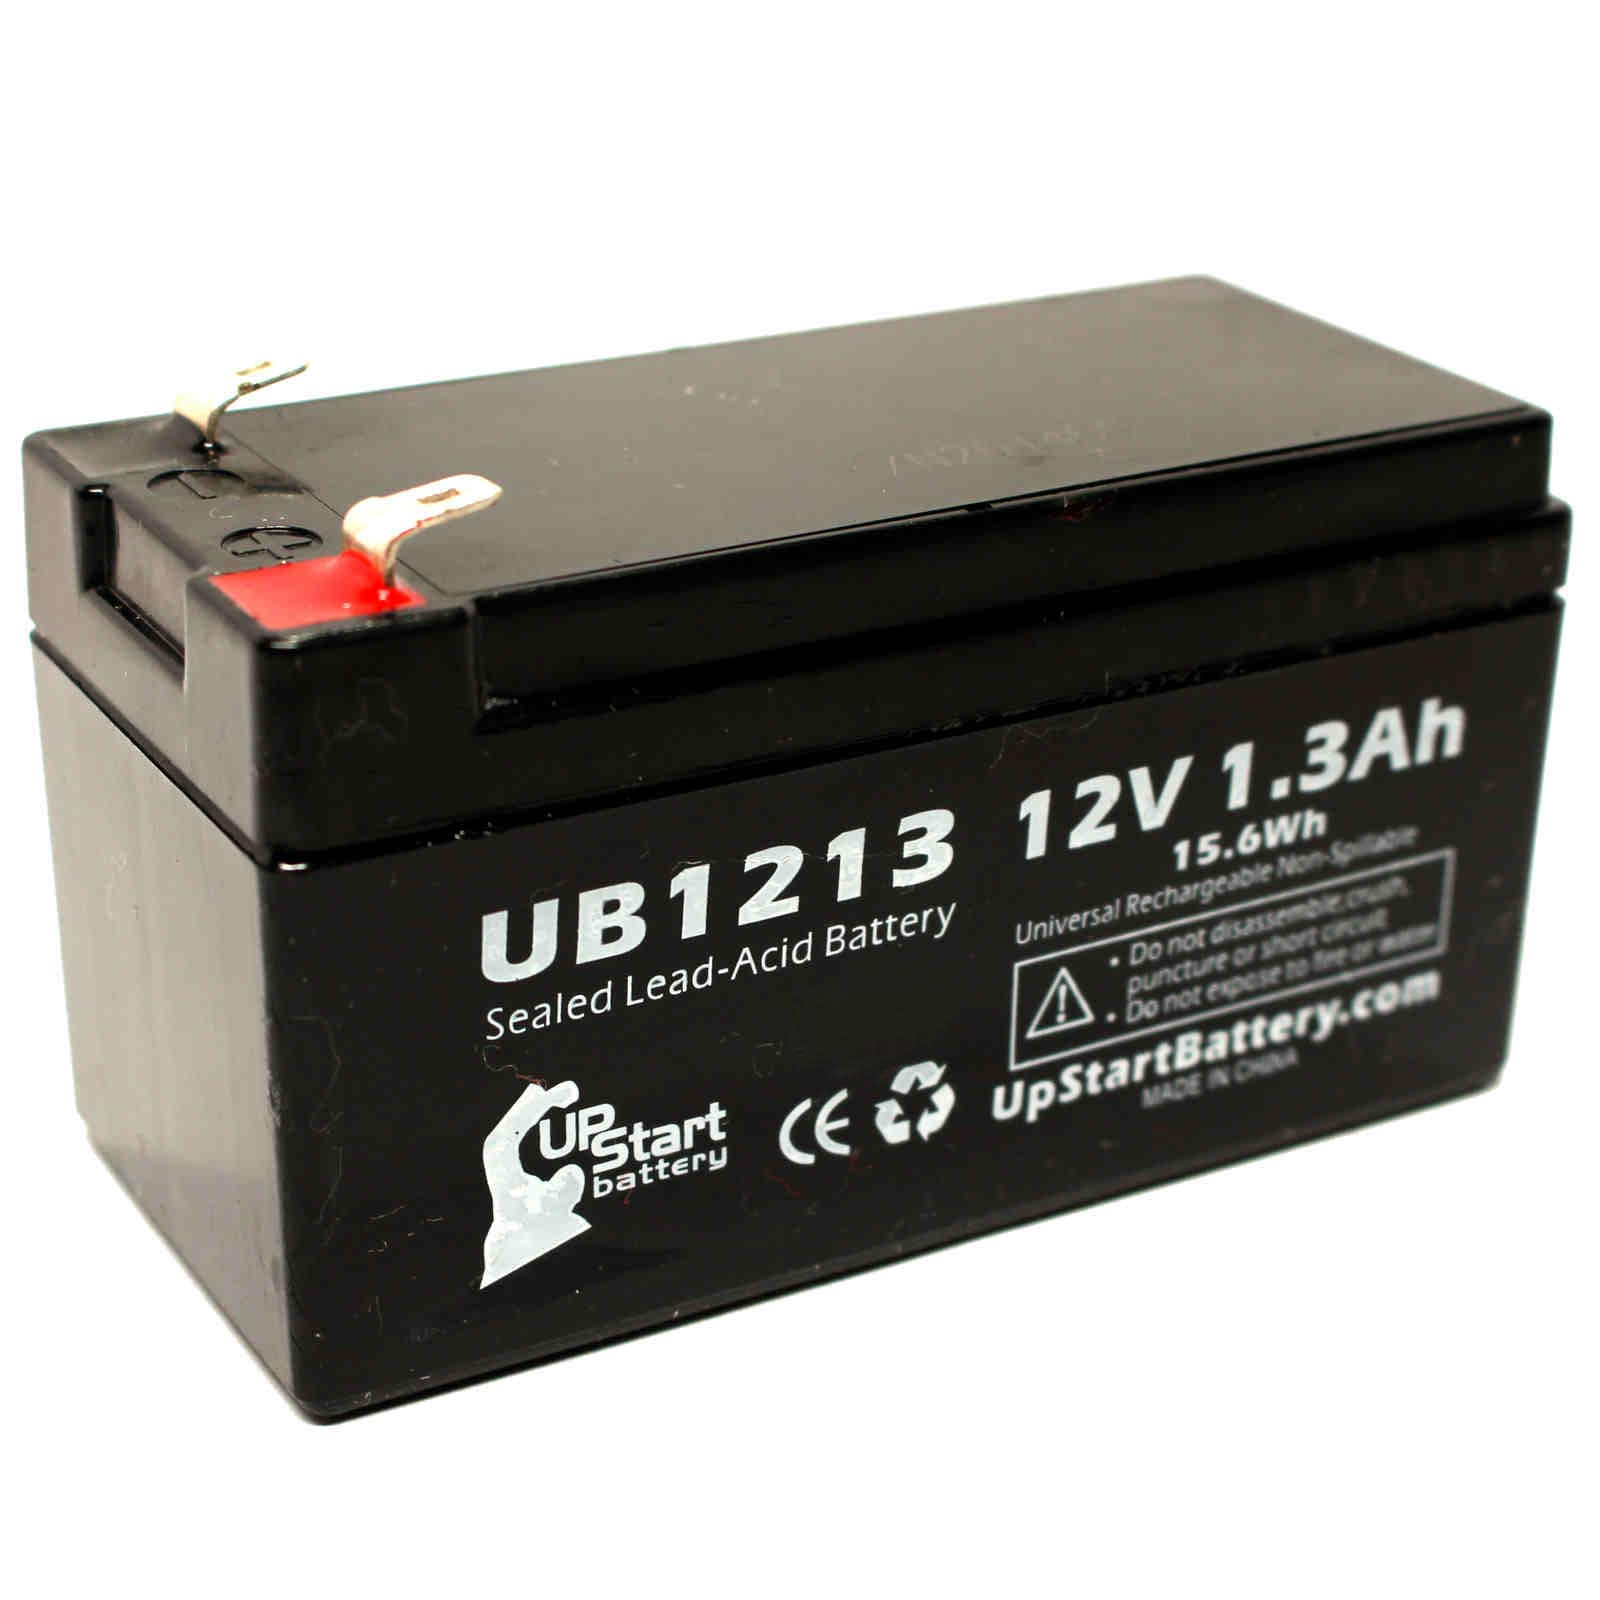 werker wka12 1 3f battery ub1213 12v 1 3ah sealed lead acid sla agm ebay. Black Bedroom Furniture Sets. Home Design Ideas